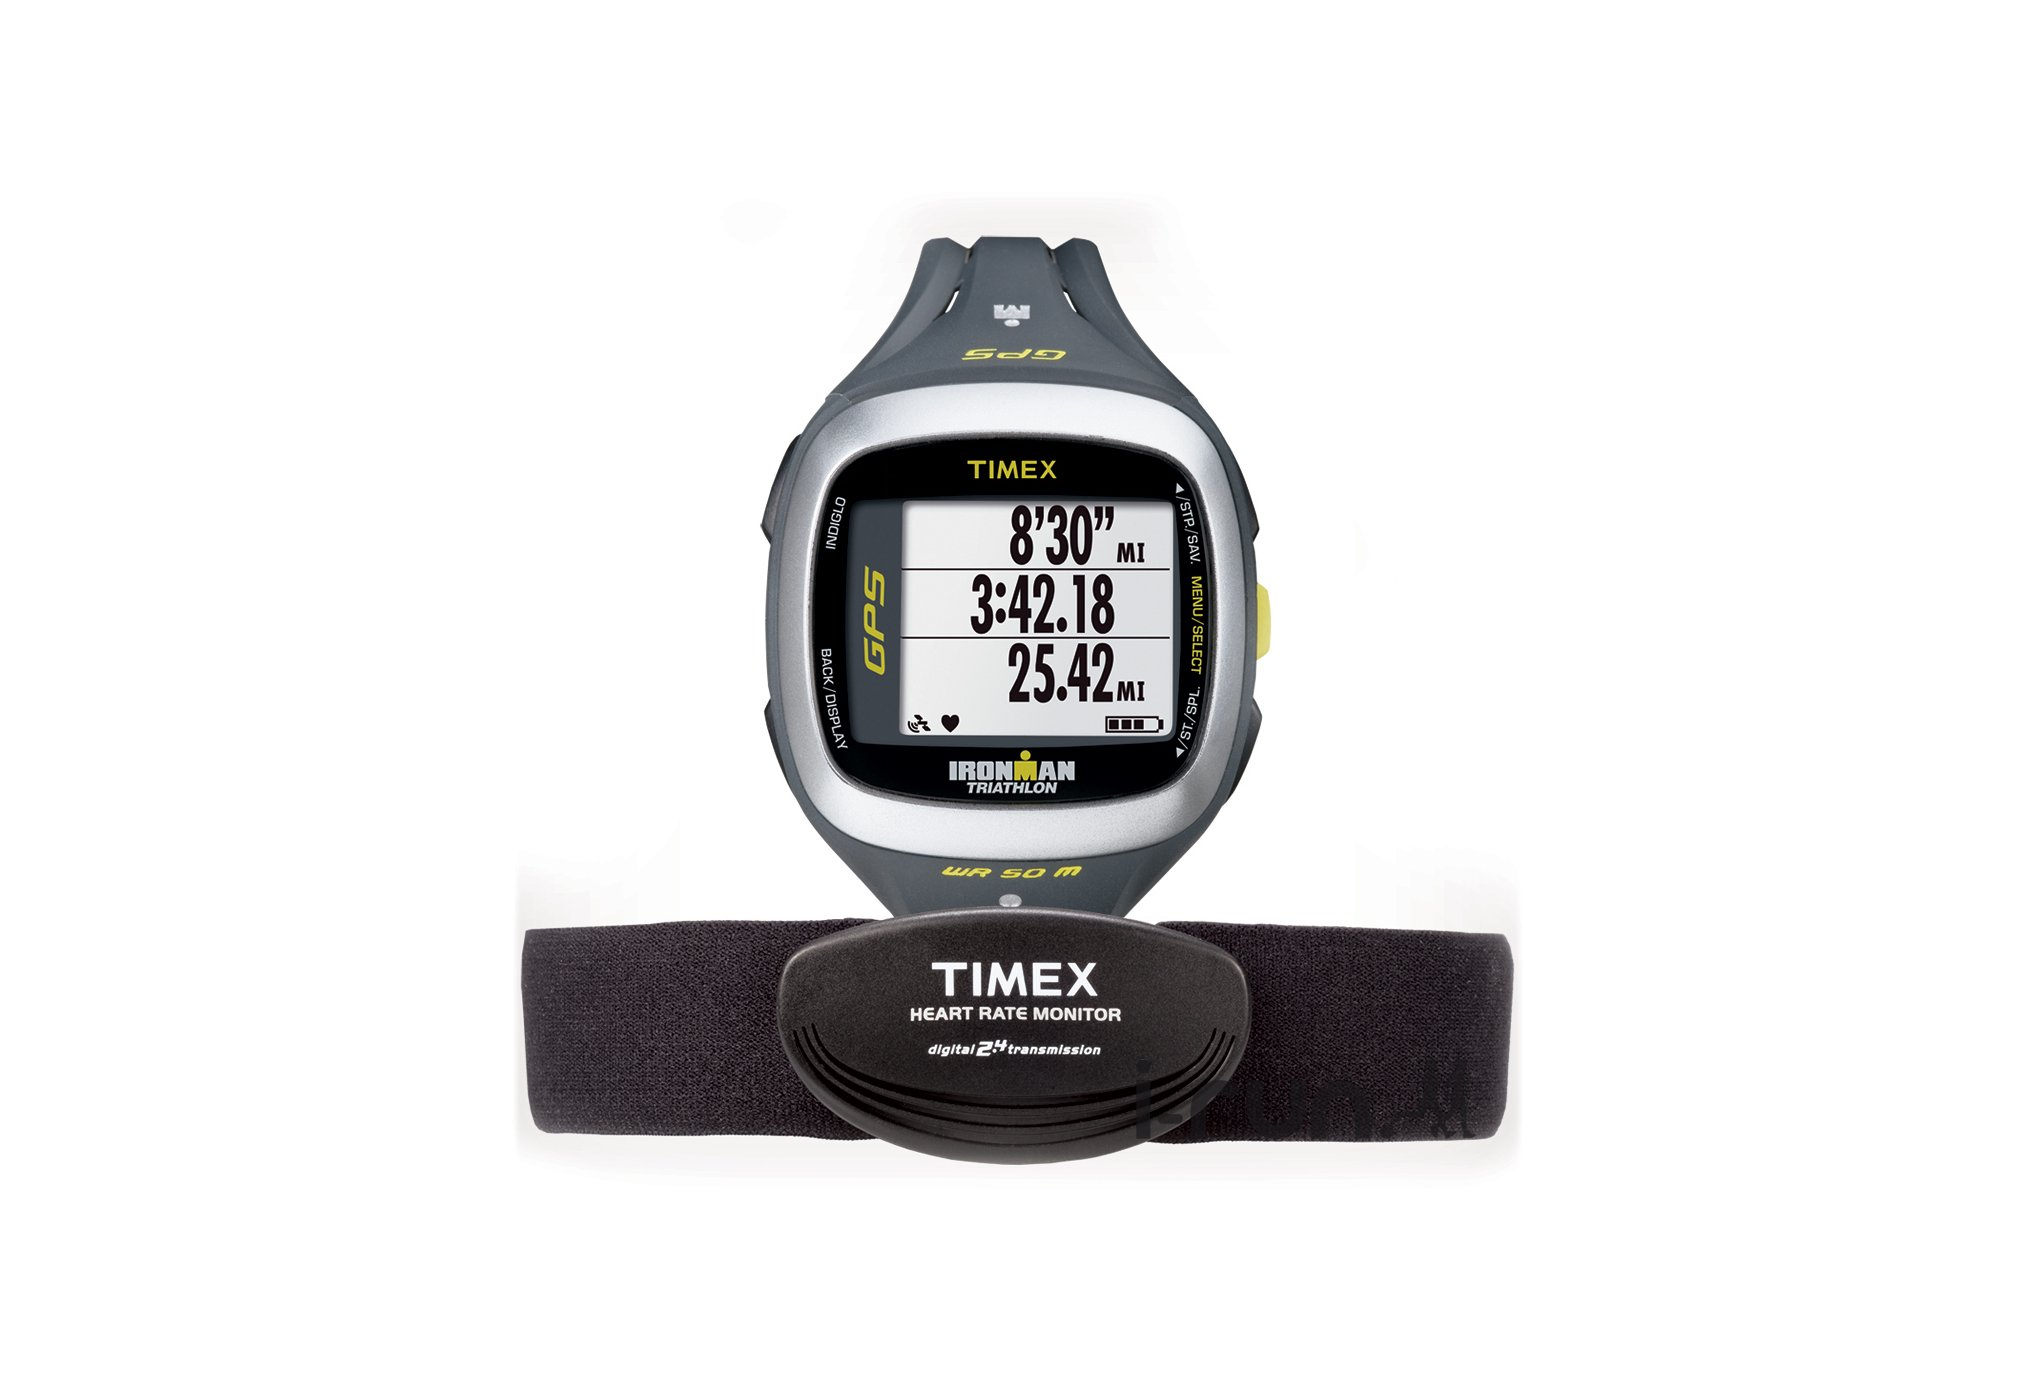 montre ironman gps cardio global trainer timex. Black Bedroom Furniture Sets. Home Design Ideas